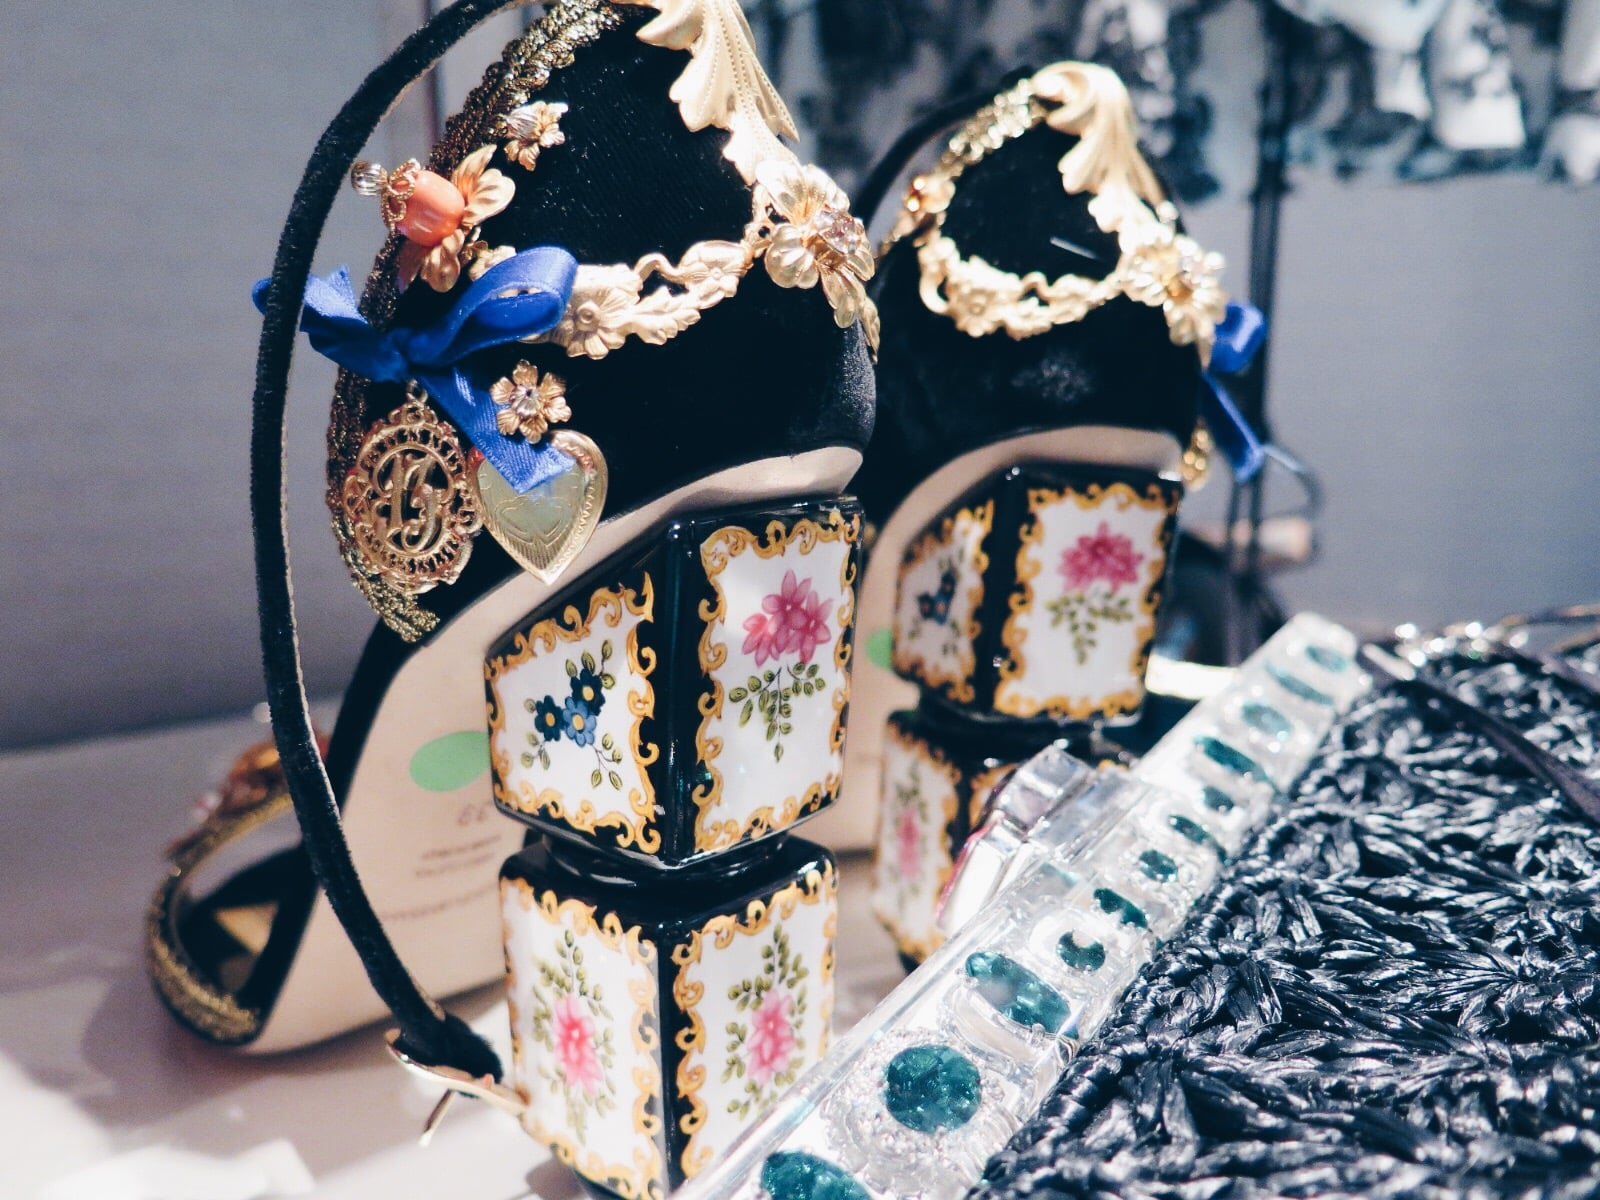 Brown Thomas Spring Summer 2016 Dolce and Gabbana Shoes and Bag